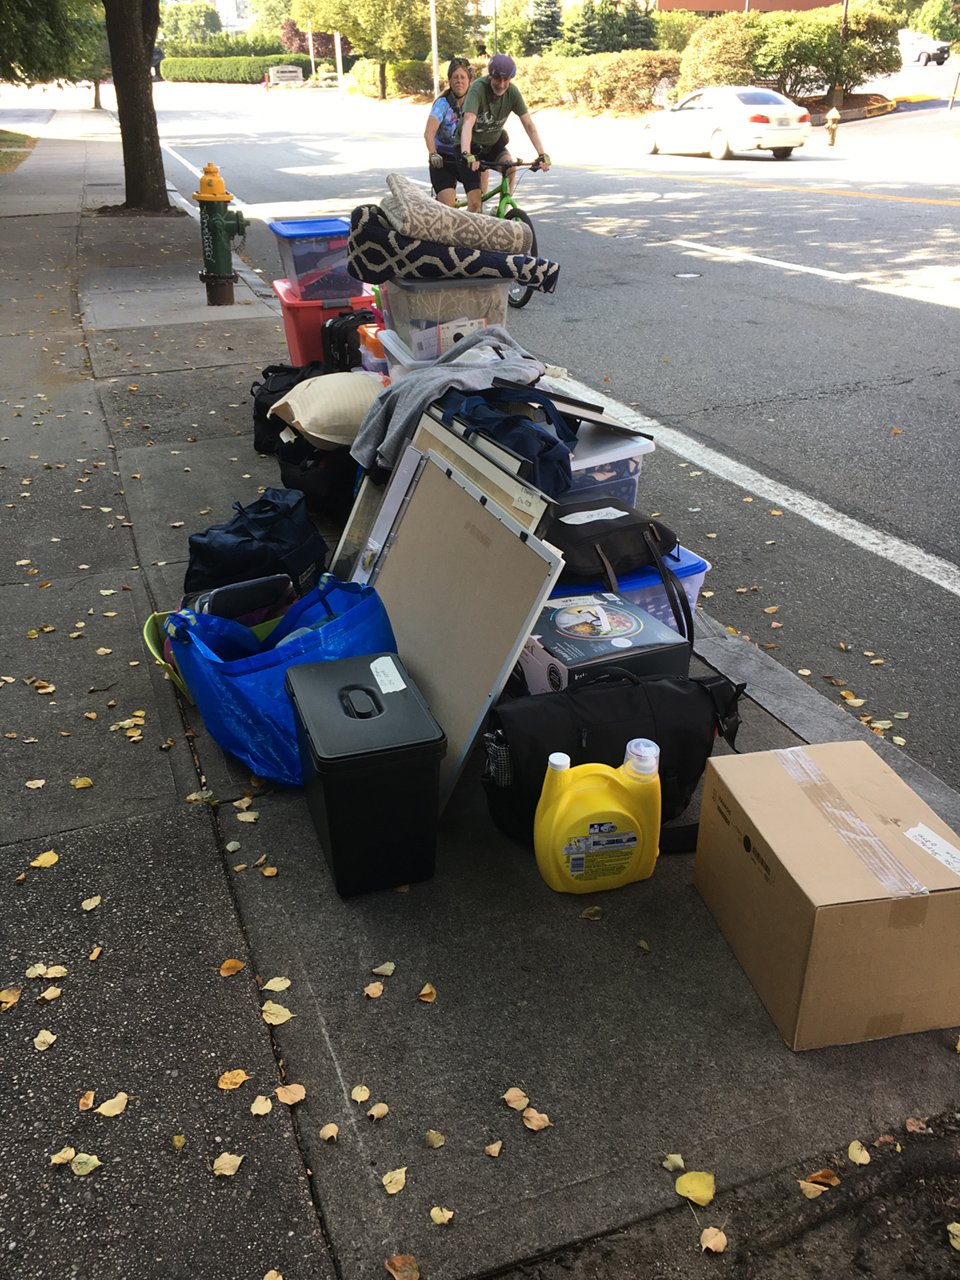 unloaded on the sidewalk